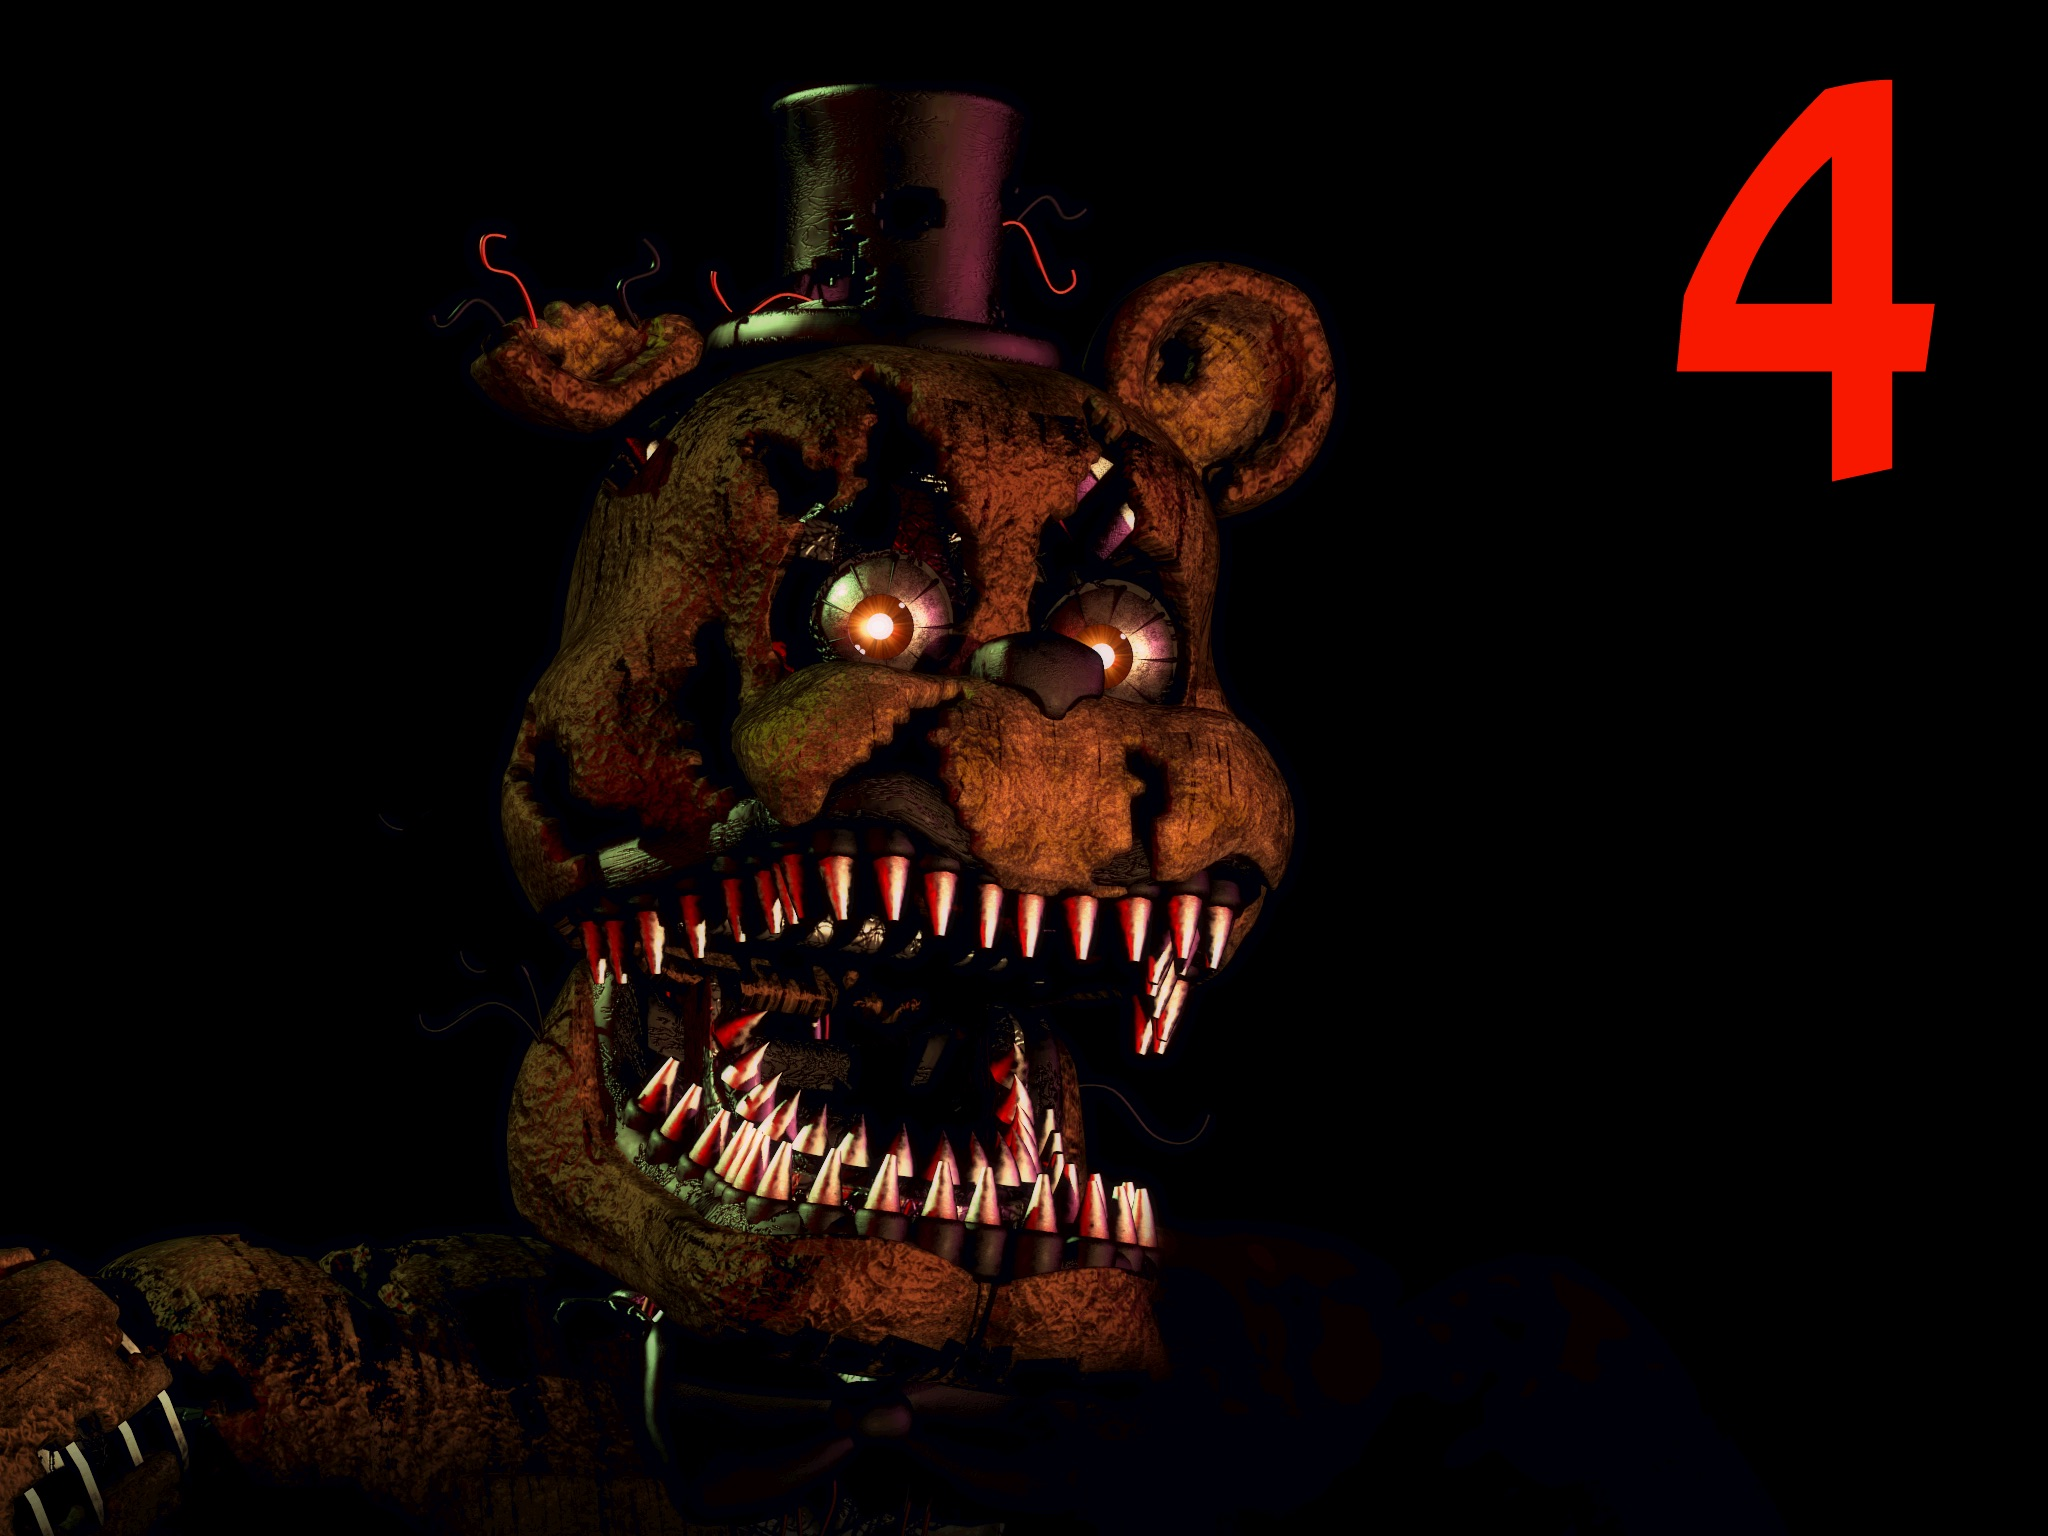 Five Nights at Freddy's 4: The Final Chapter (Video Game